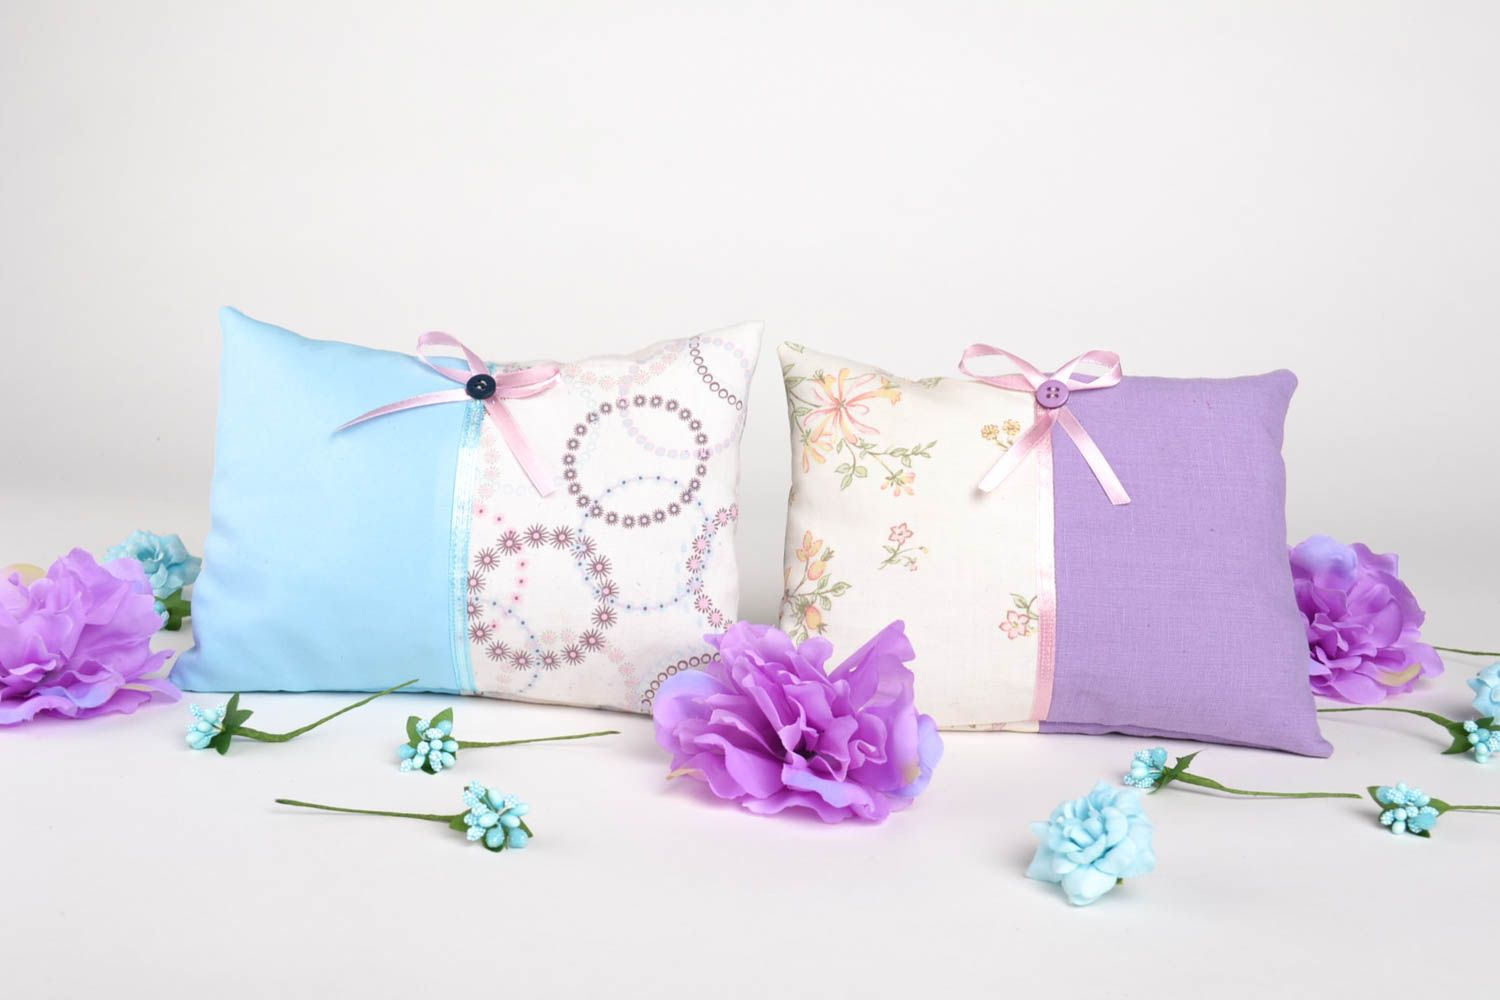 Homemade home decor 2 sachet pillows scented sachets homemade gifts for friends photo 1